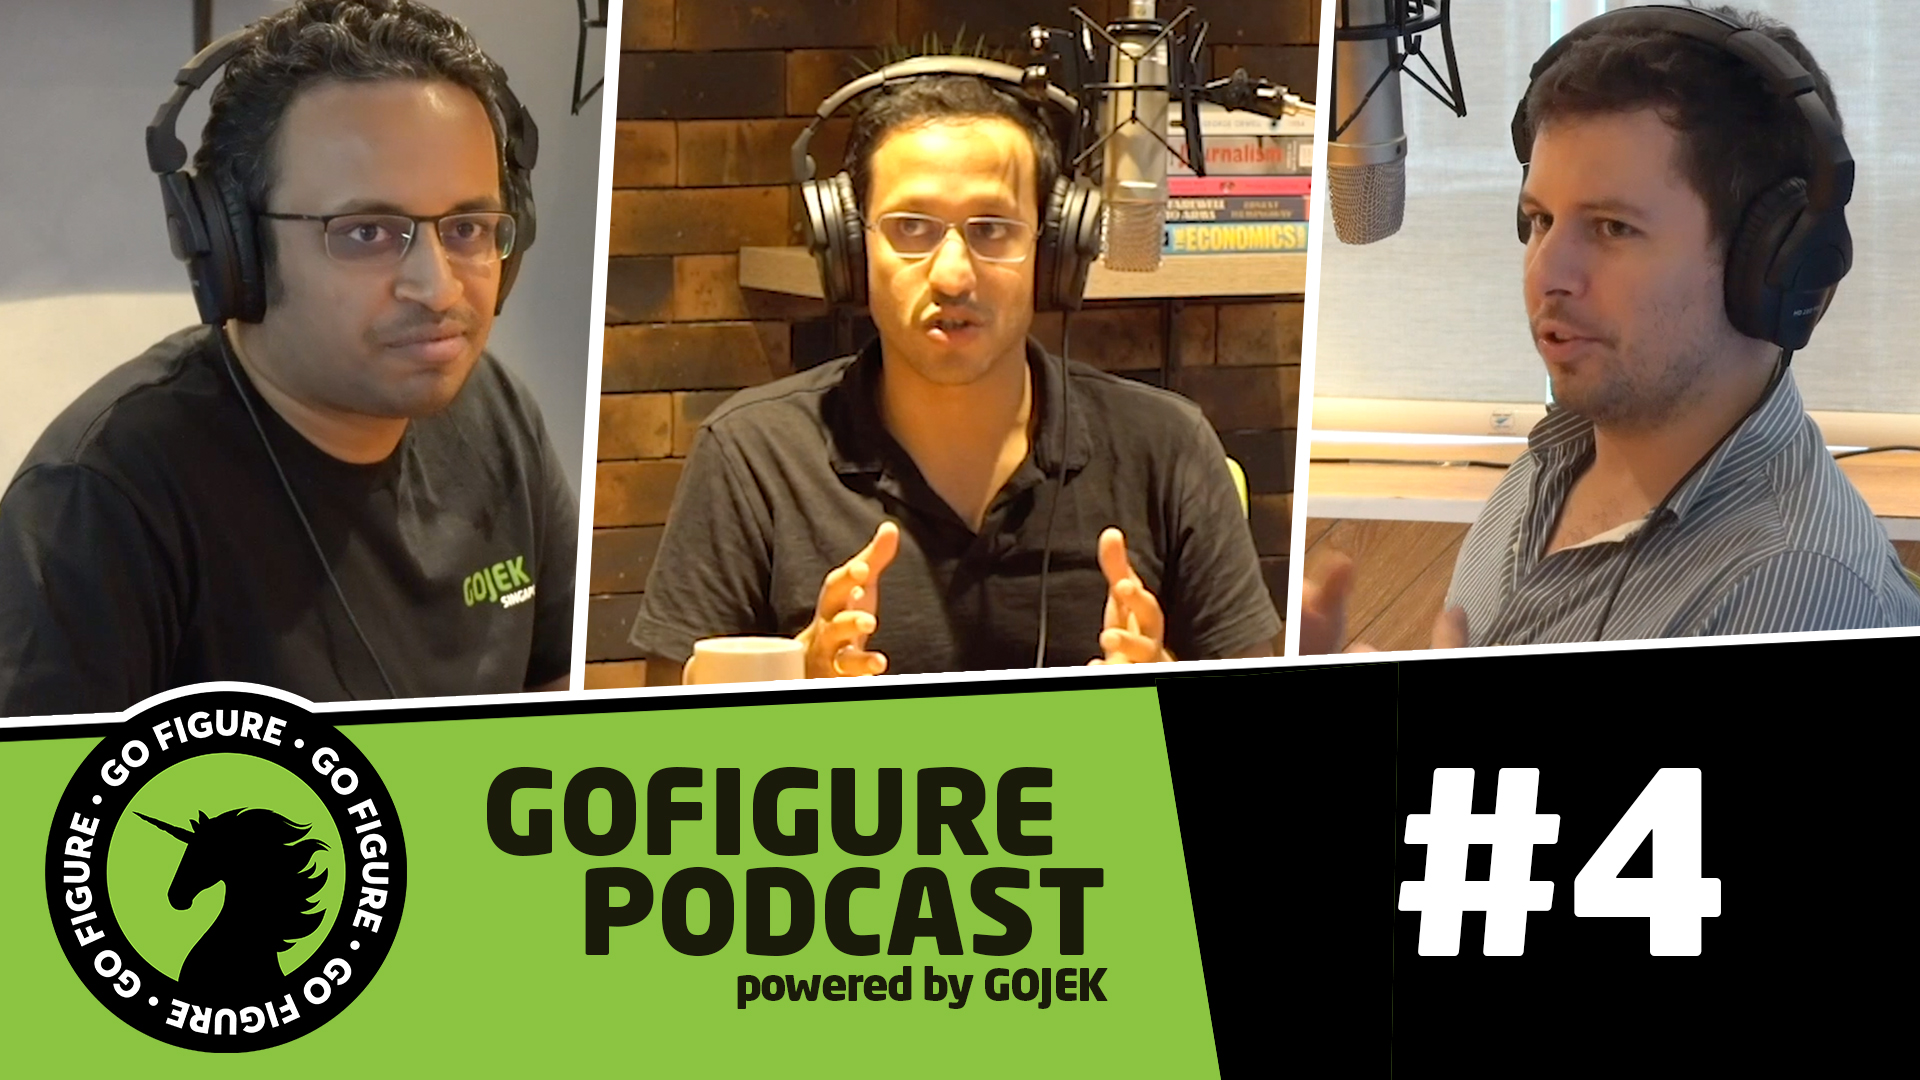 Episode 4: Realistic Approaches To Machine Learning At Gojek